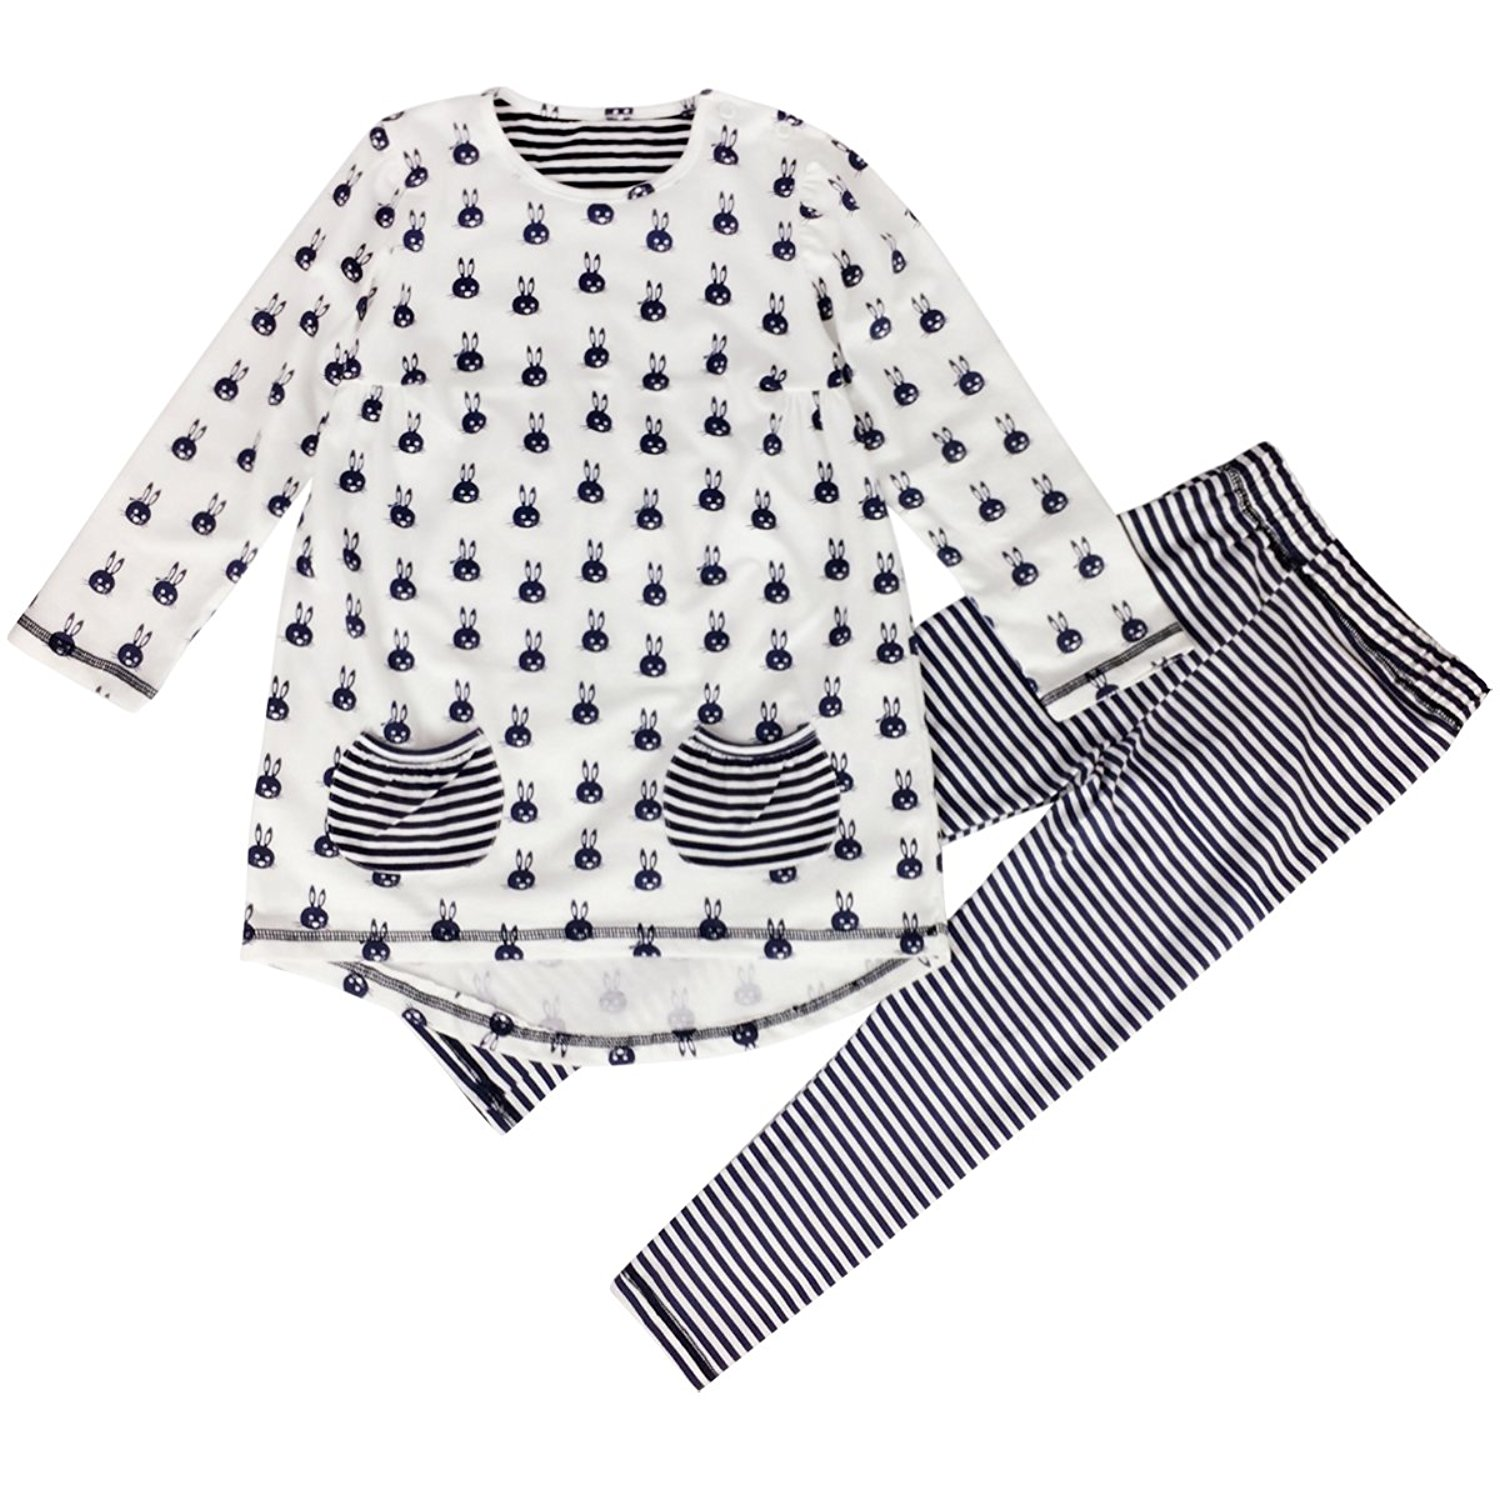 Thrivqyaf Little Girls 2pcs Rabbit Print Top+Legging Outfit Sets with Pockets